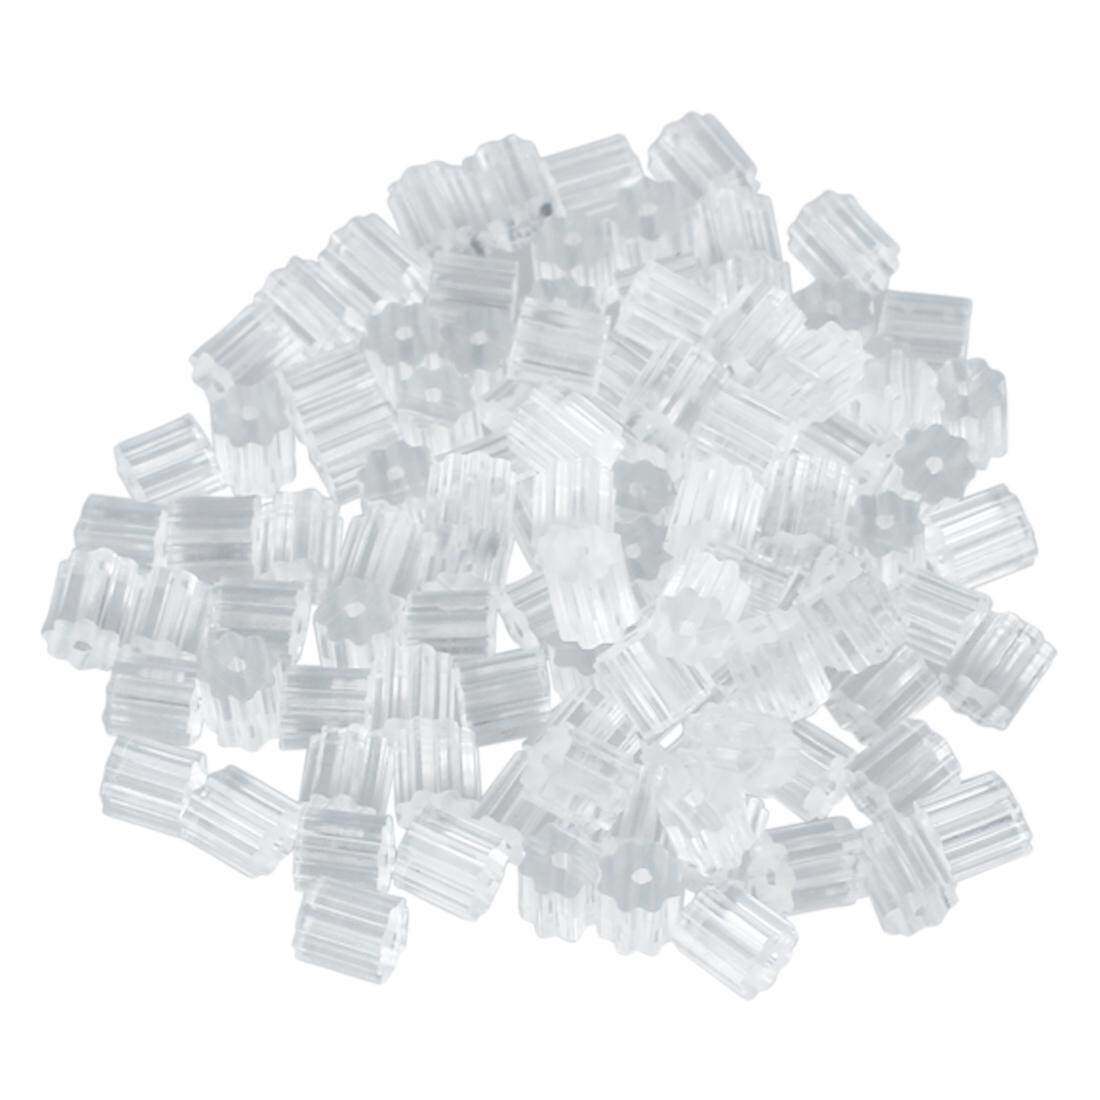 100pcs Earring Backs Medium 3mm Safety for Fish Hook Translucent Stoppers Protectors - Clear